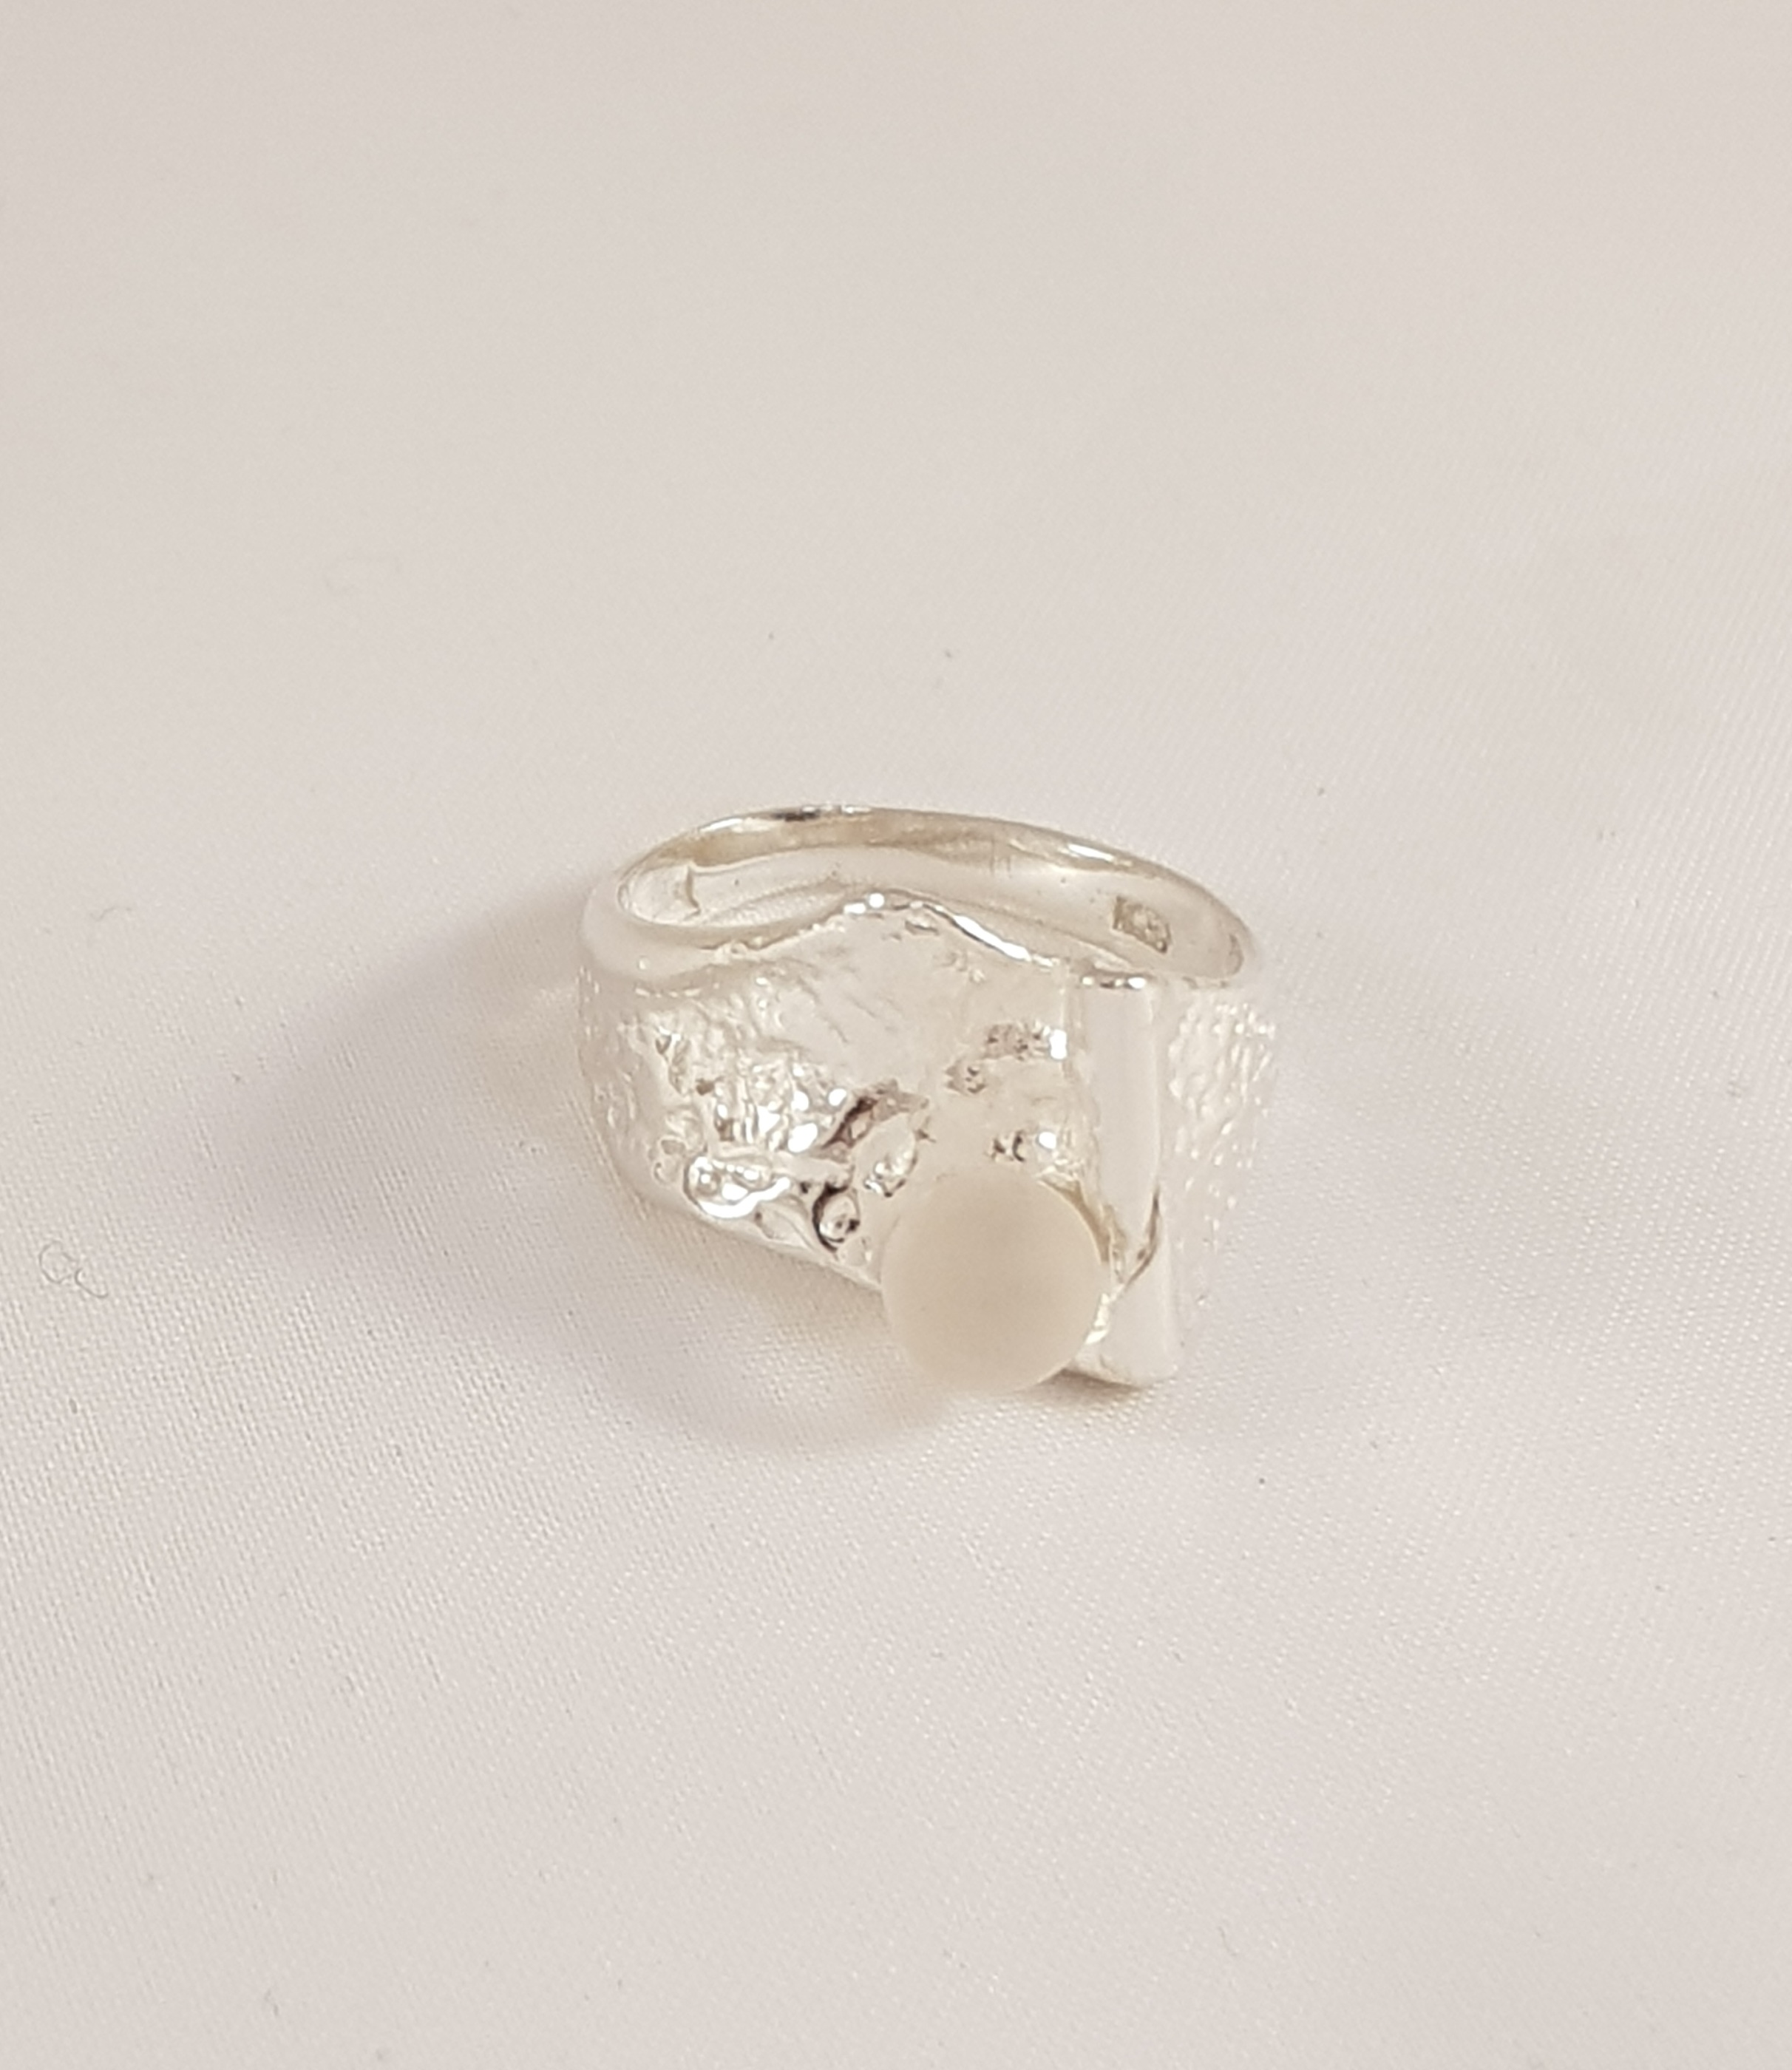 Kebnekaise ring